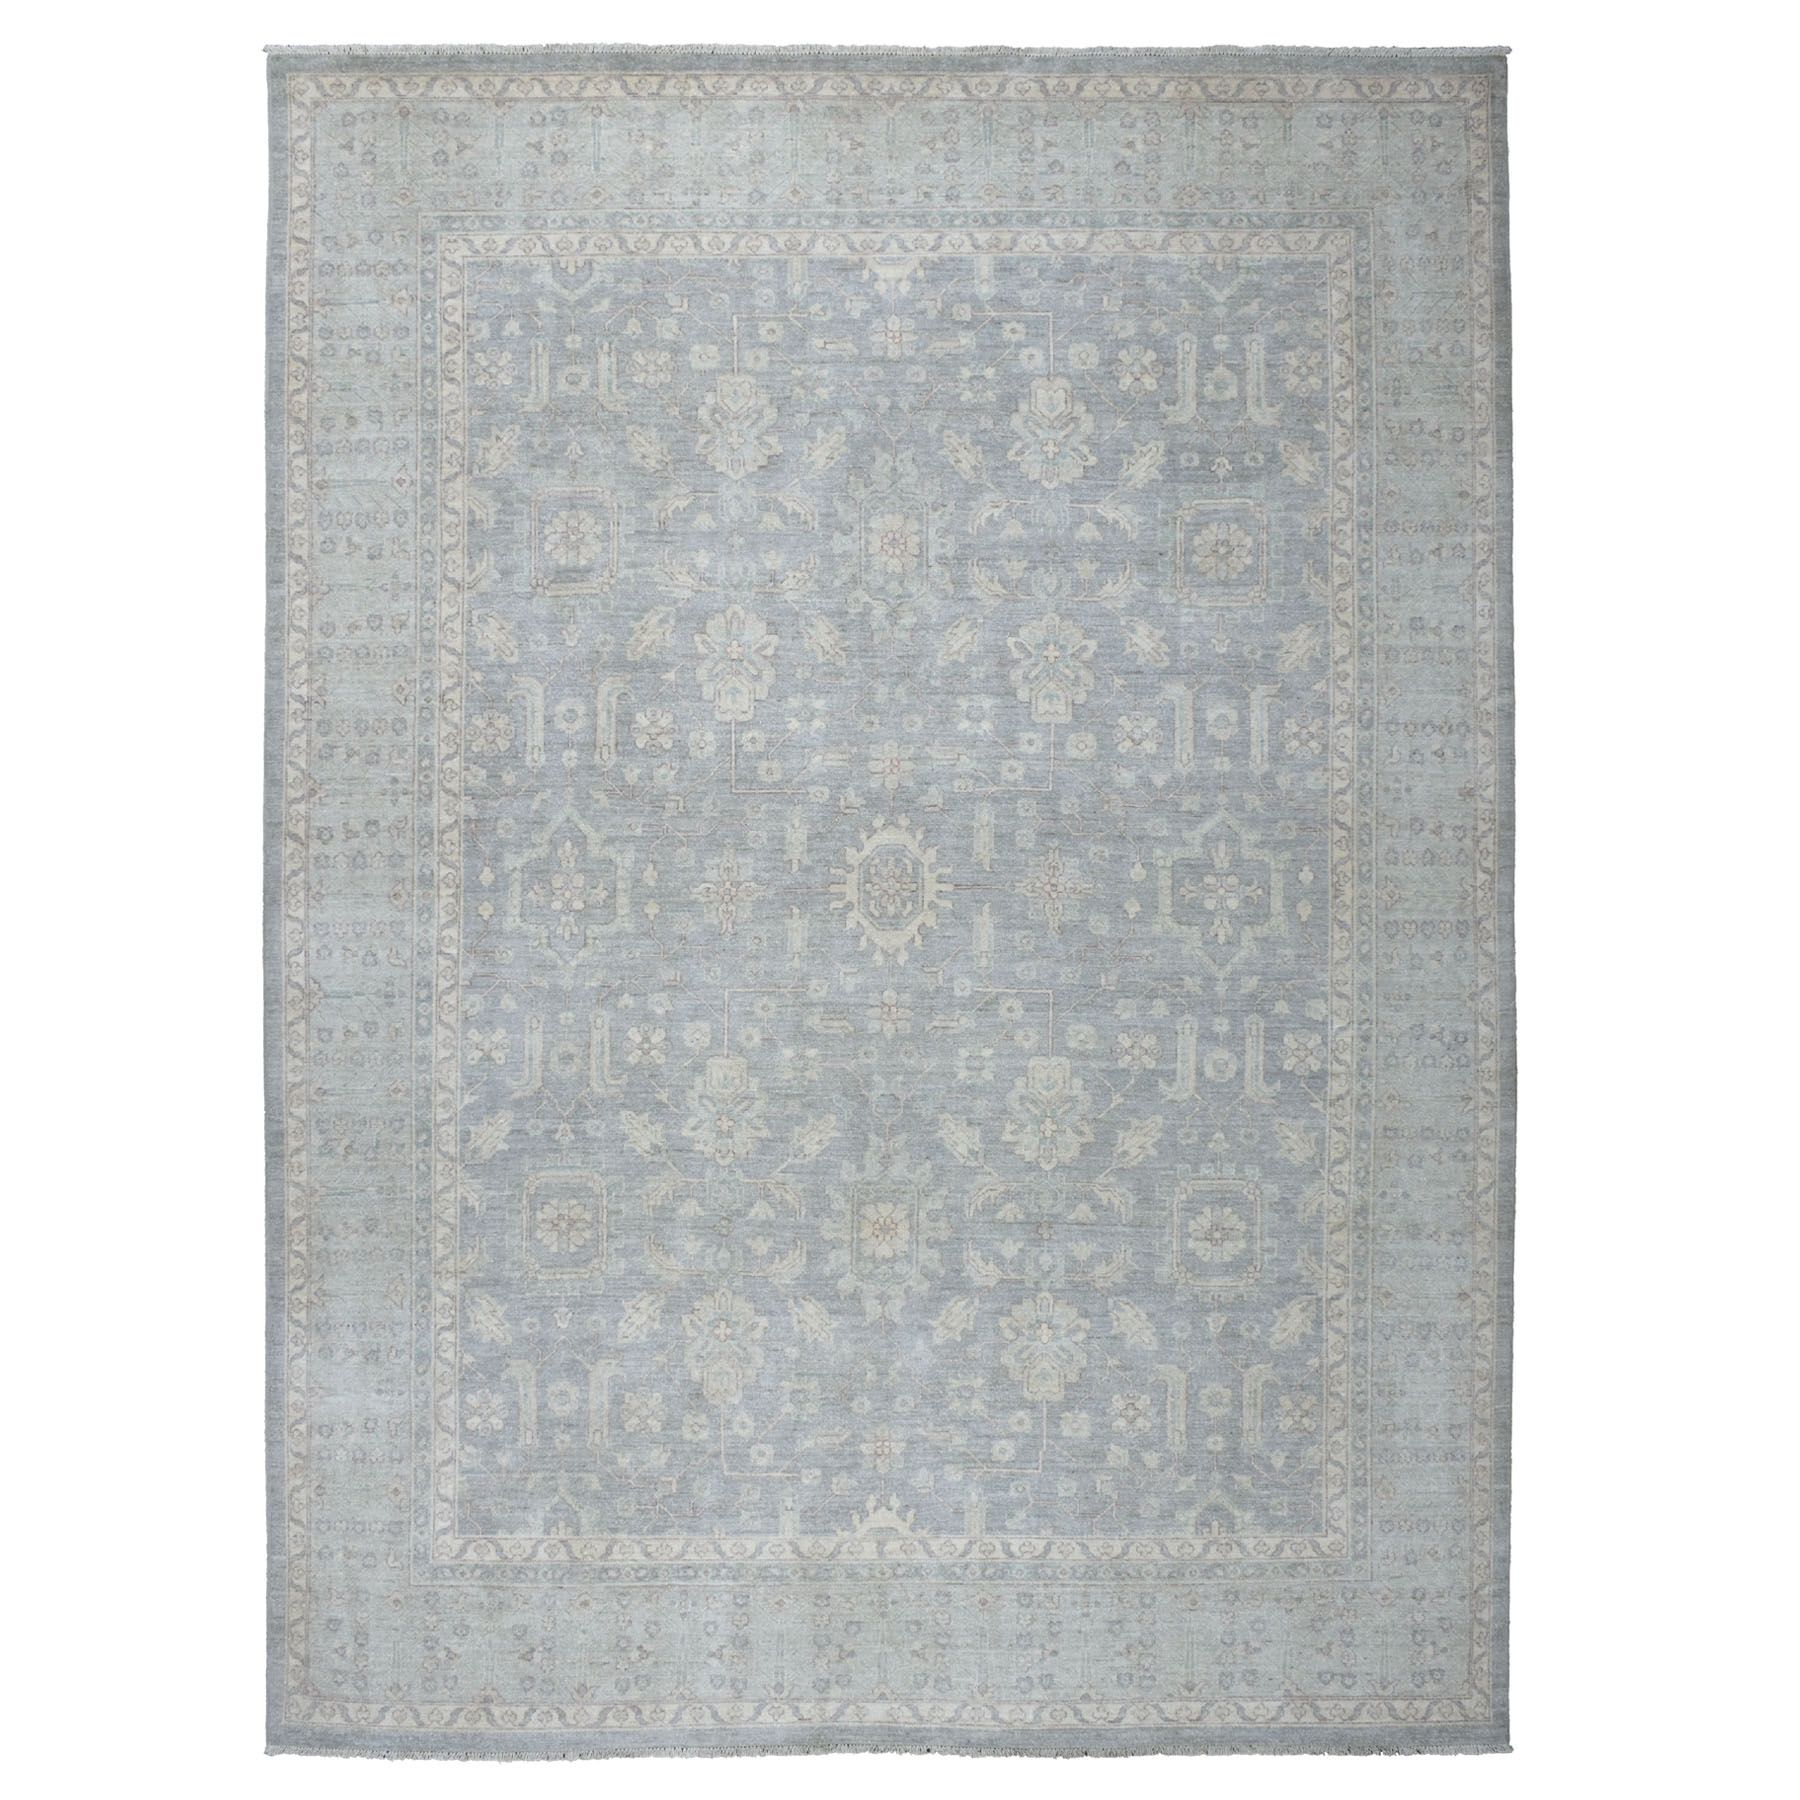 9'x12' White Wash Peshawar Pure Wool Hand Knotted Oriental Rug